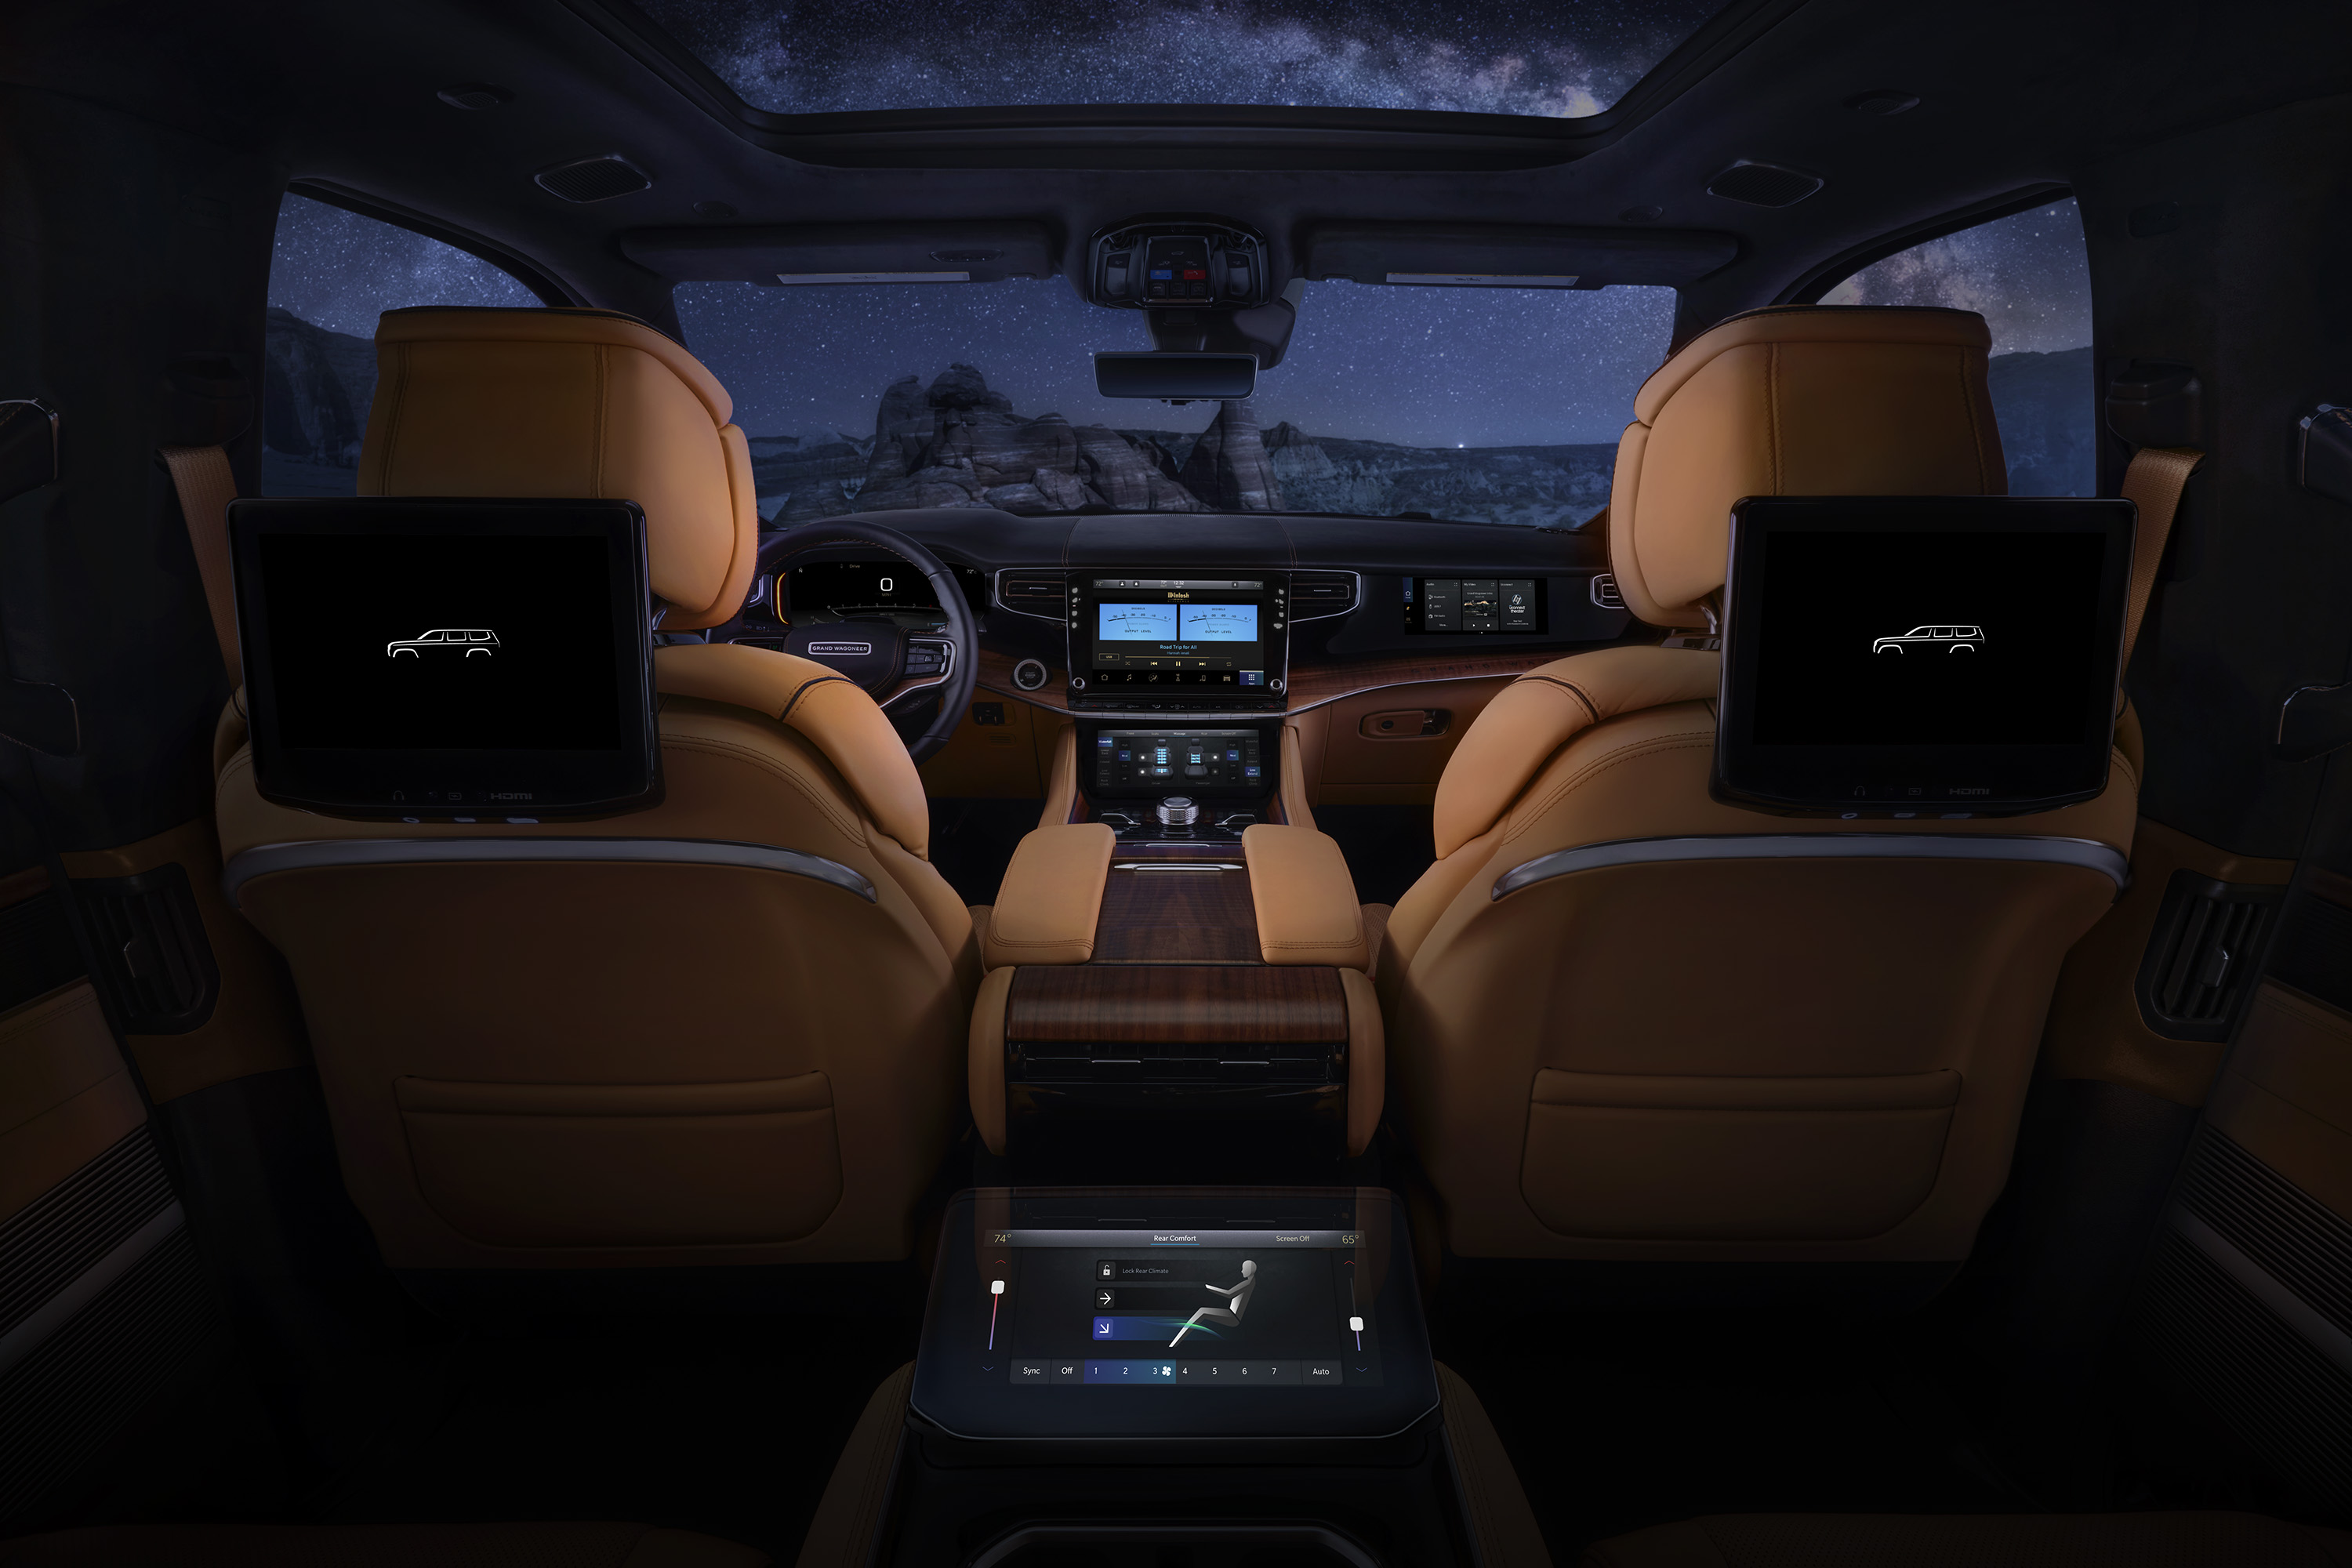 All-new 2022 Grand Wagoneer features two 10.1-inch entertainment touchscreens with the available Rear Seat Entertainment system, which features independent streaming capabilities from major content providers.